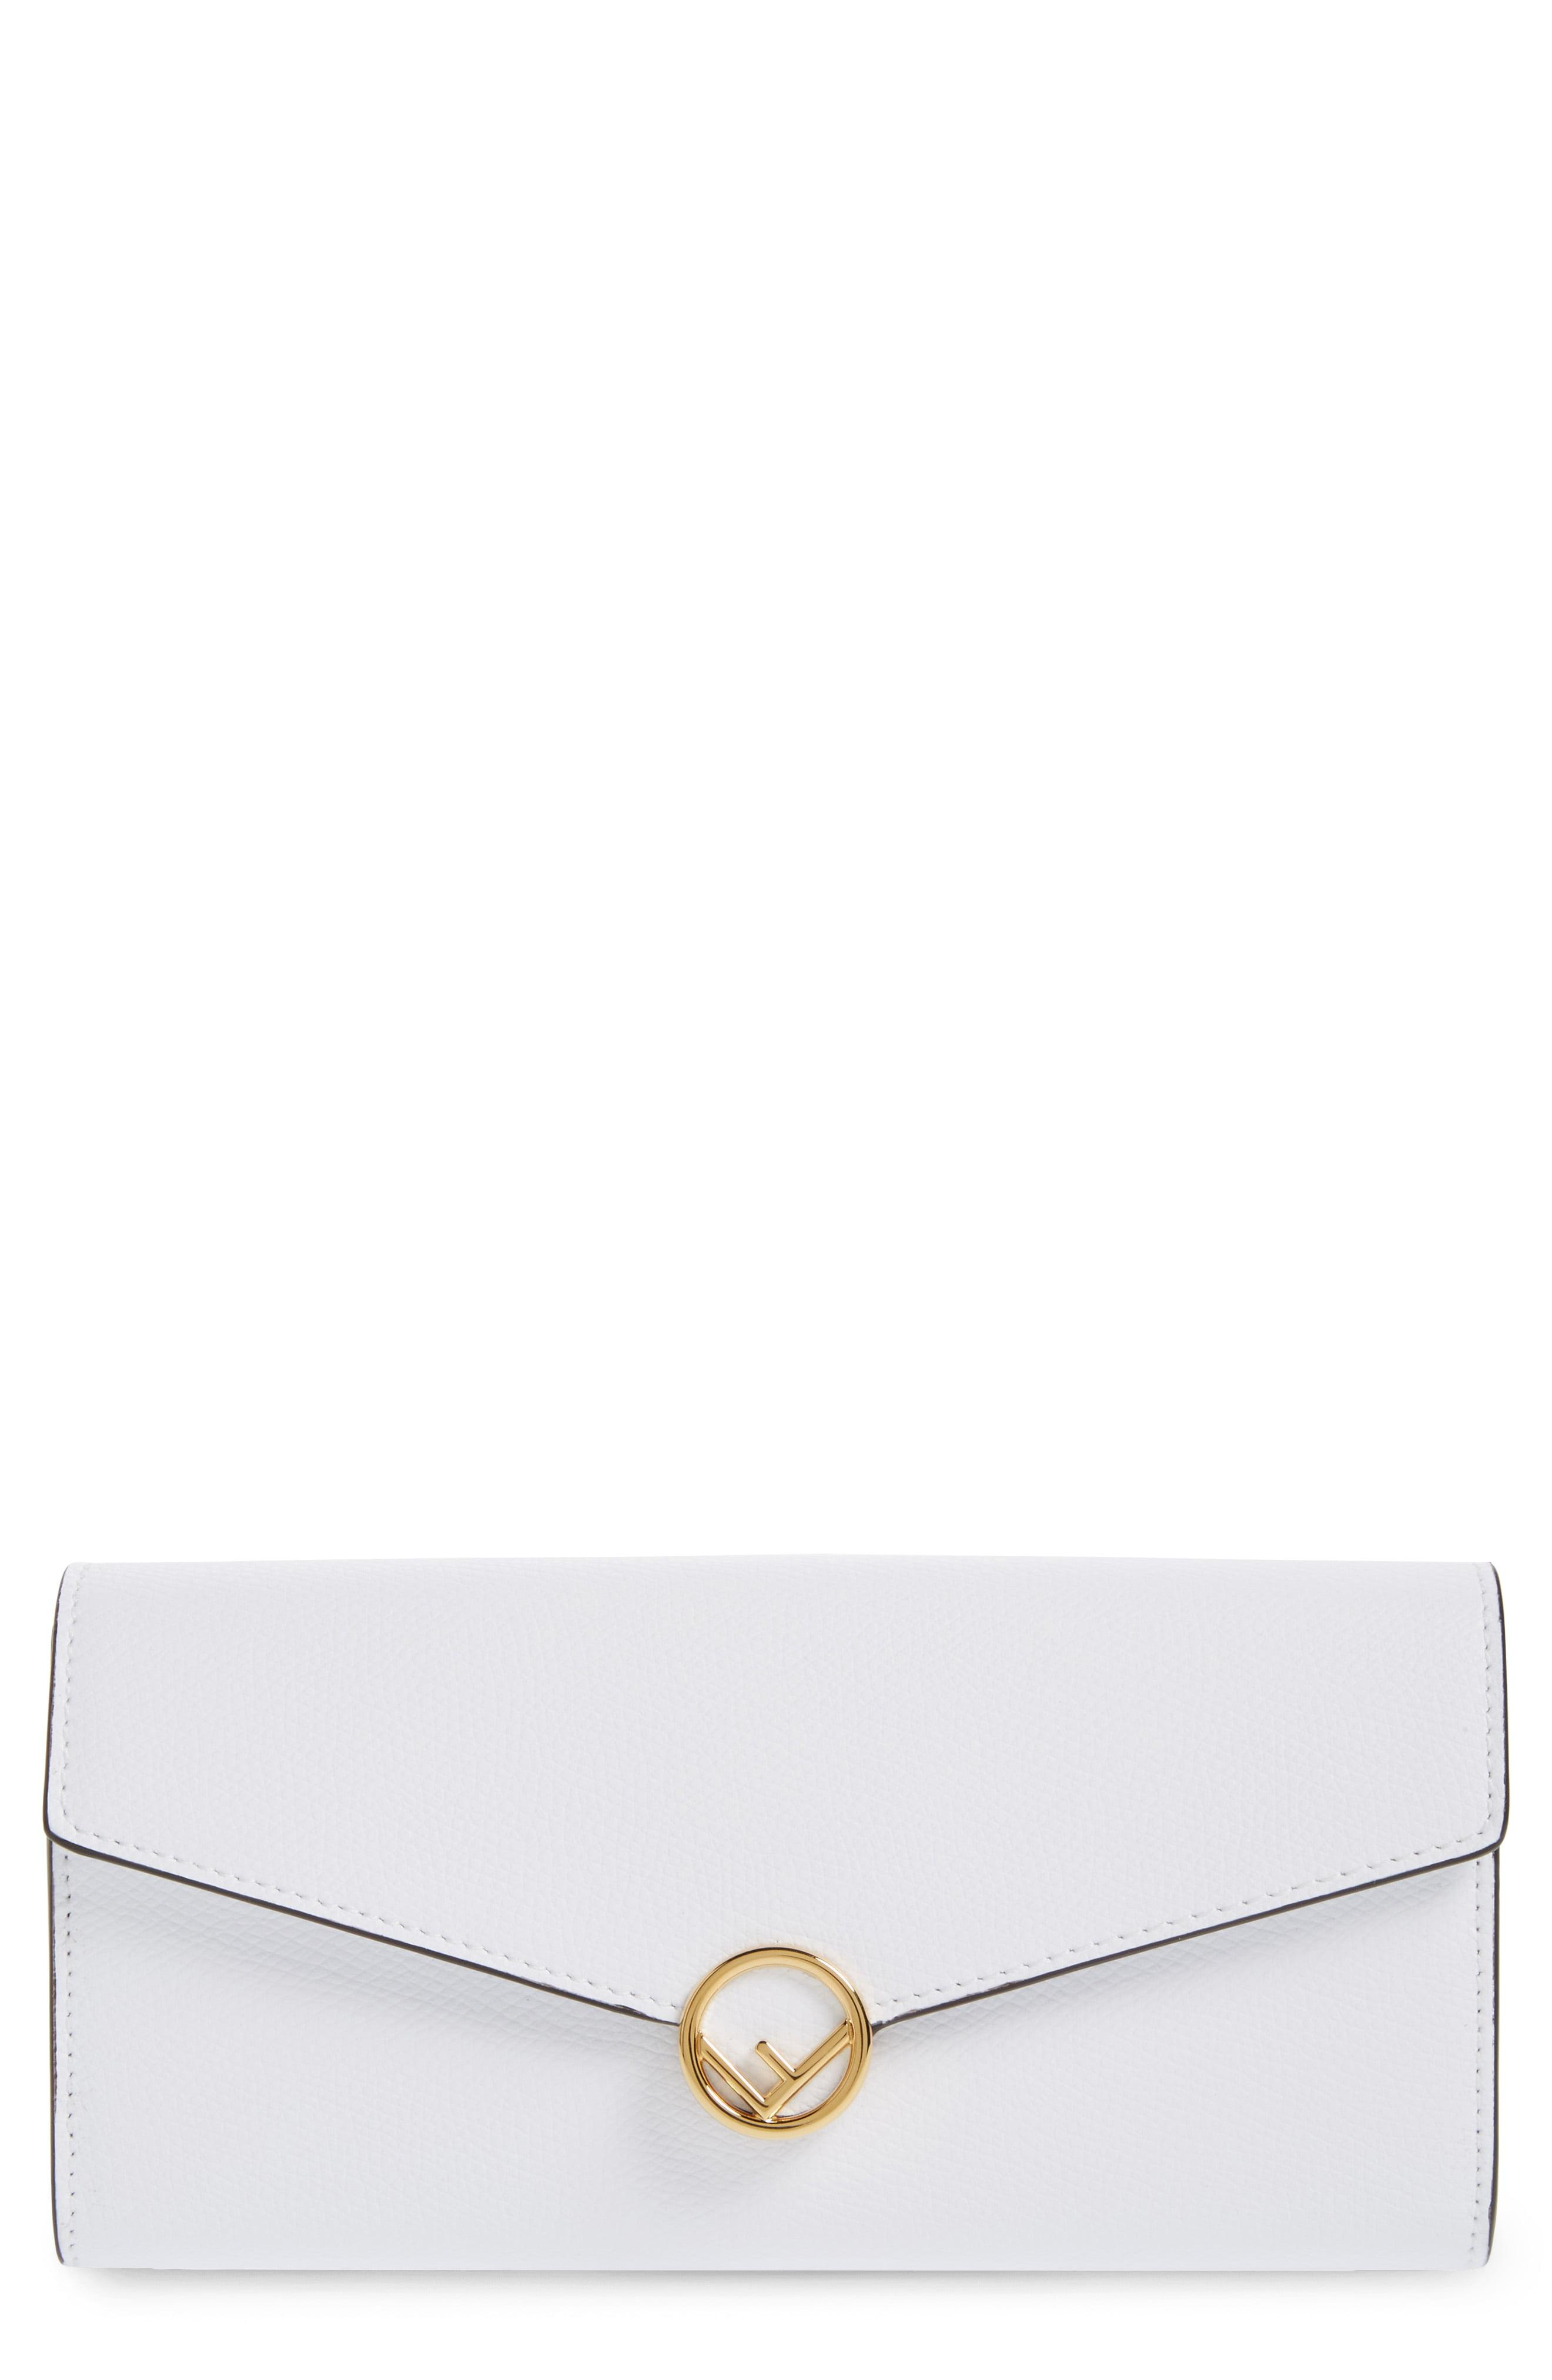 fc79d8f645aa Lyst - Fendi Logo Flap Leather Continental Wallet On A Chain in ...